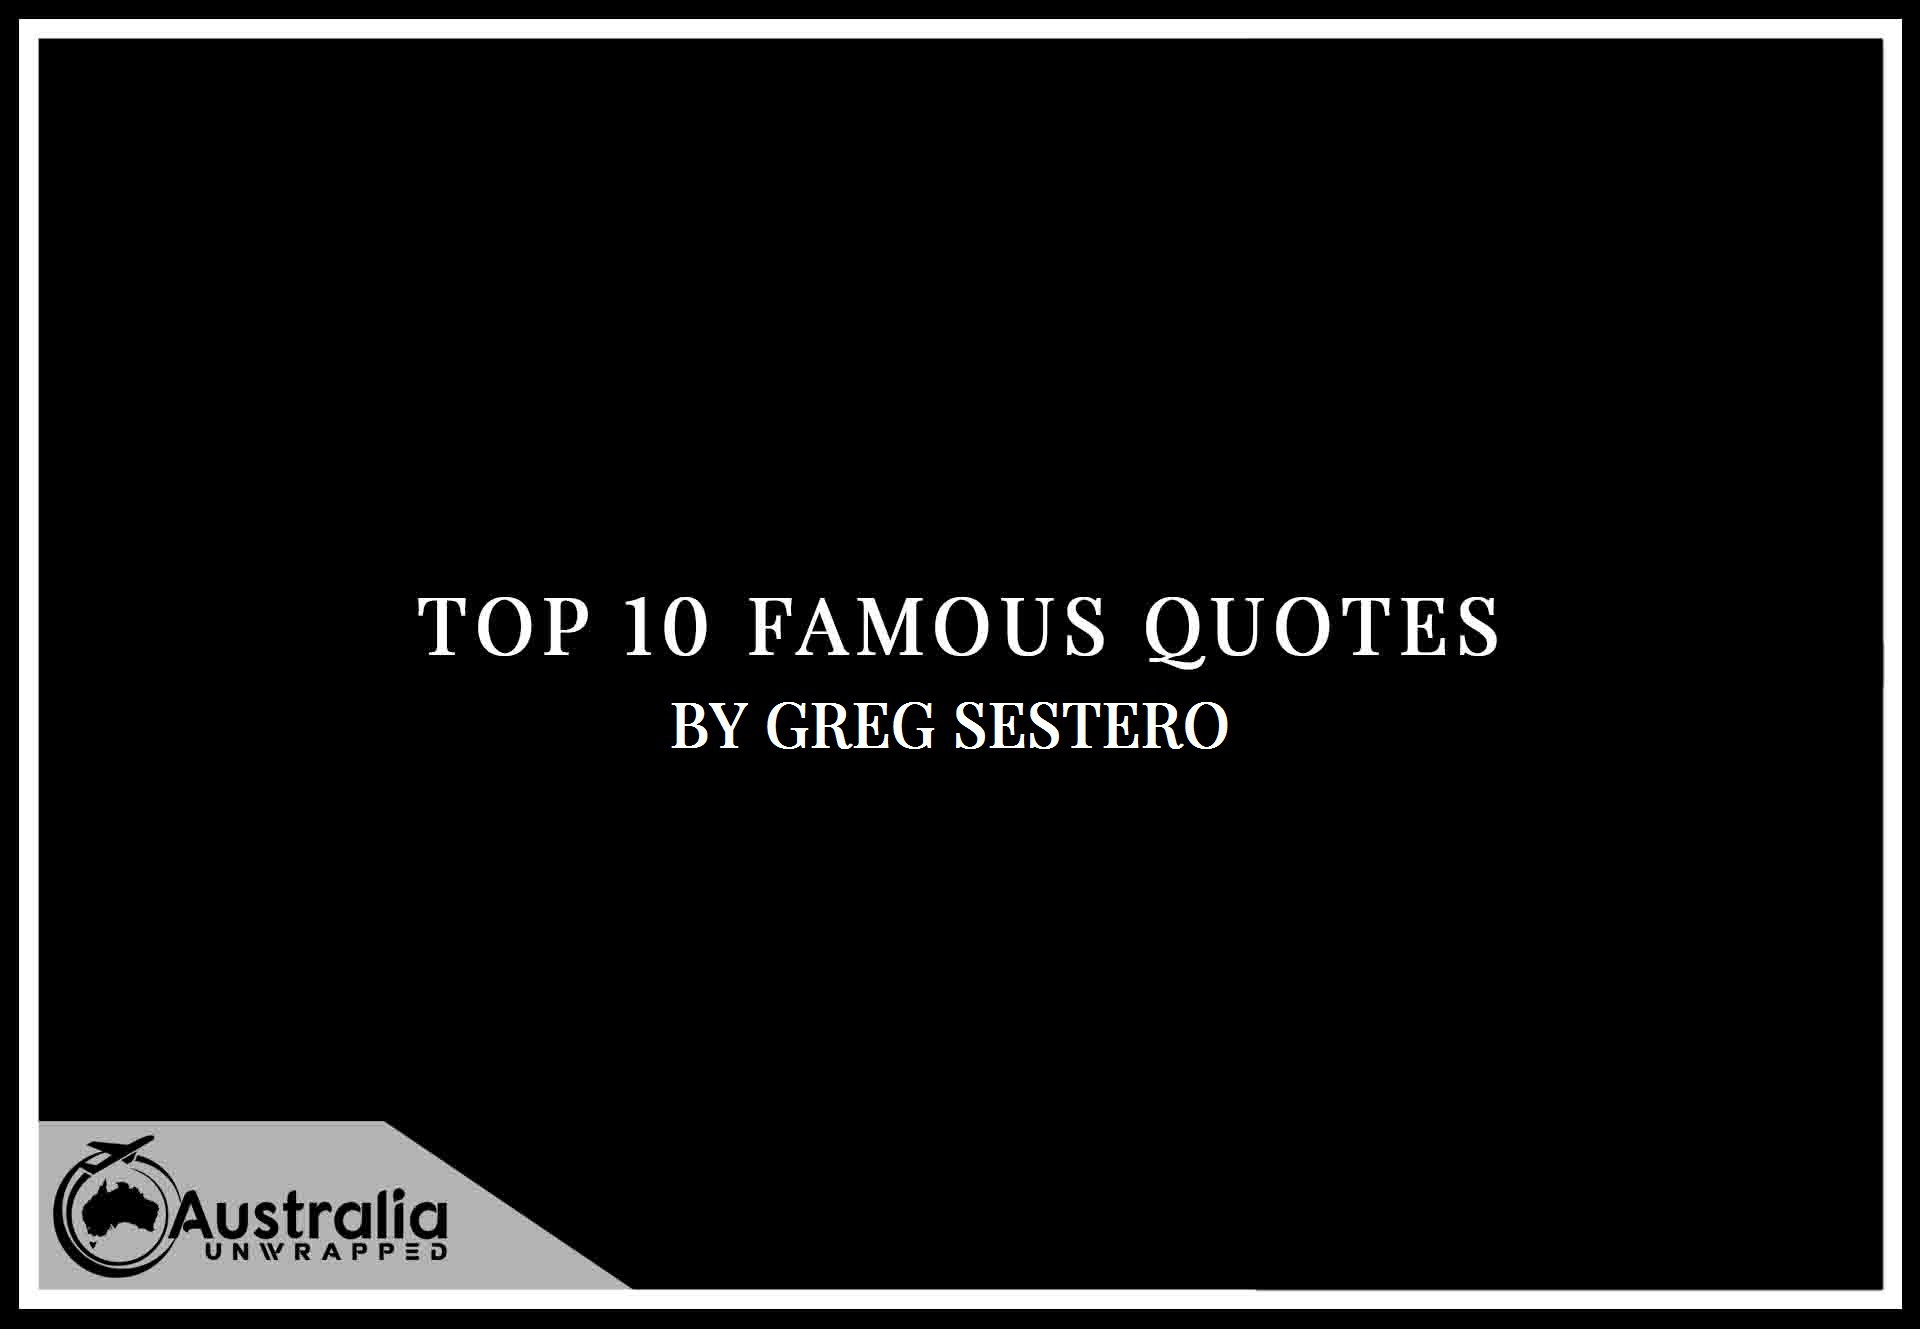 Greg Sestero's Top 10 Popular and Famous Quotes